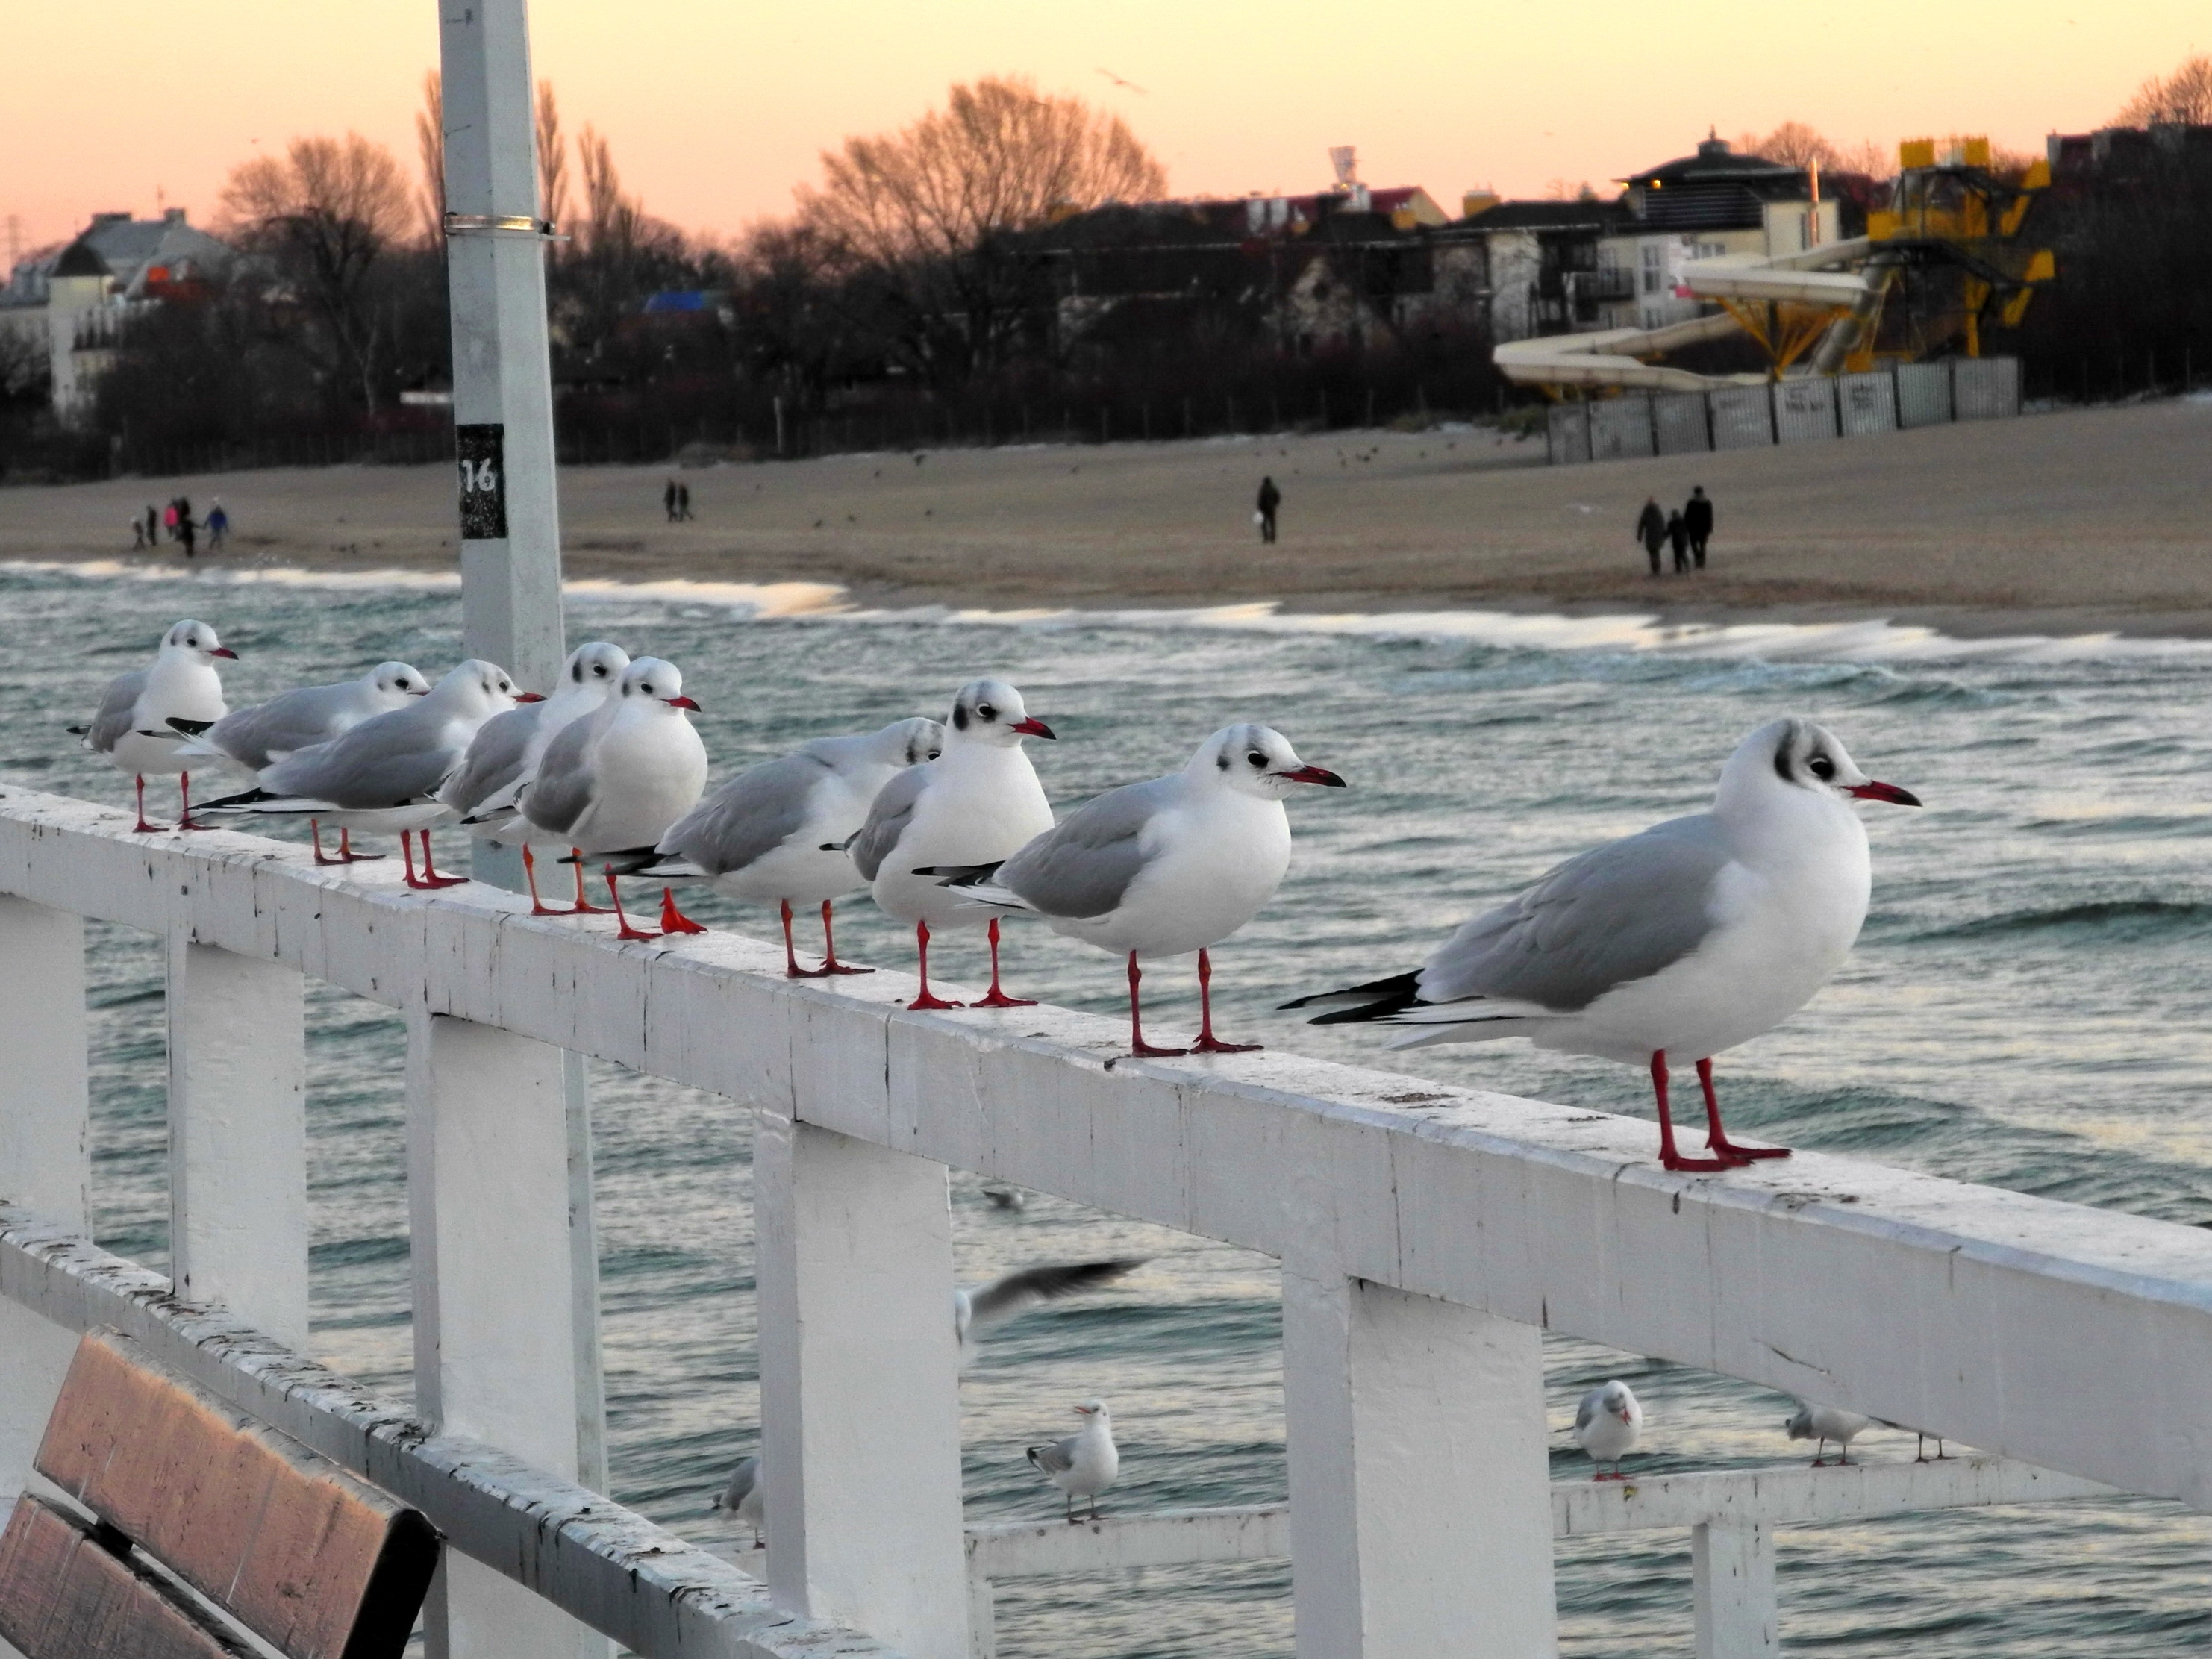 151937 download wallpaper Animals, Bridge, Handrail, Seagulls screensavers and pictures for free